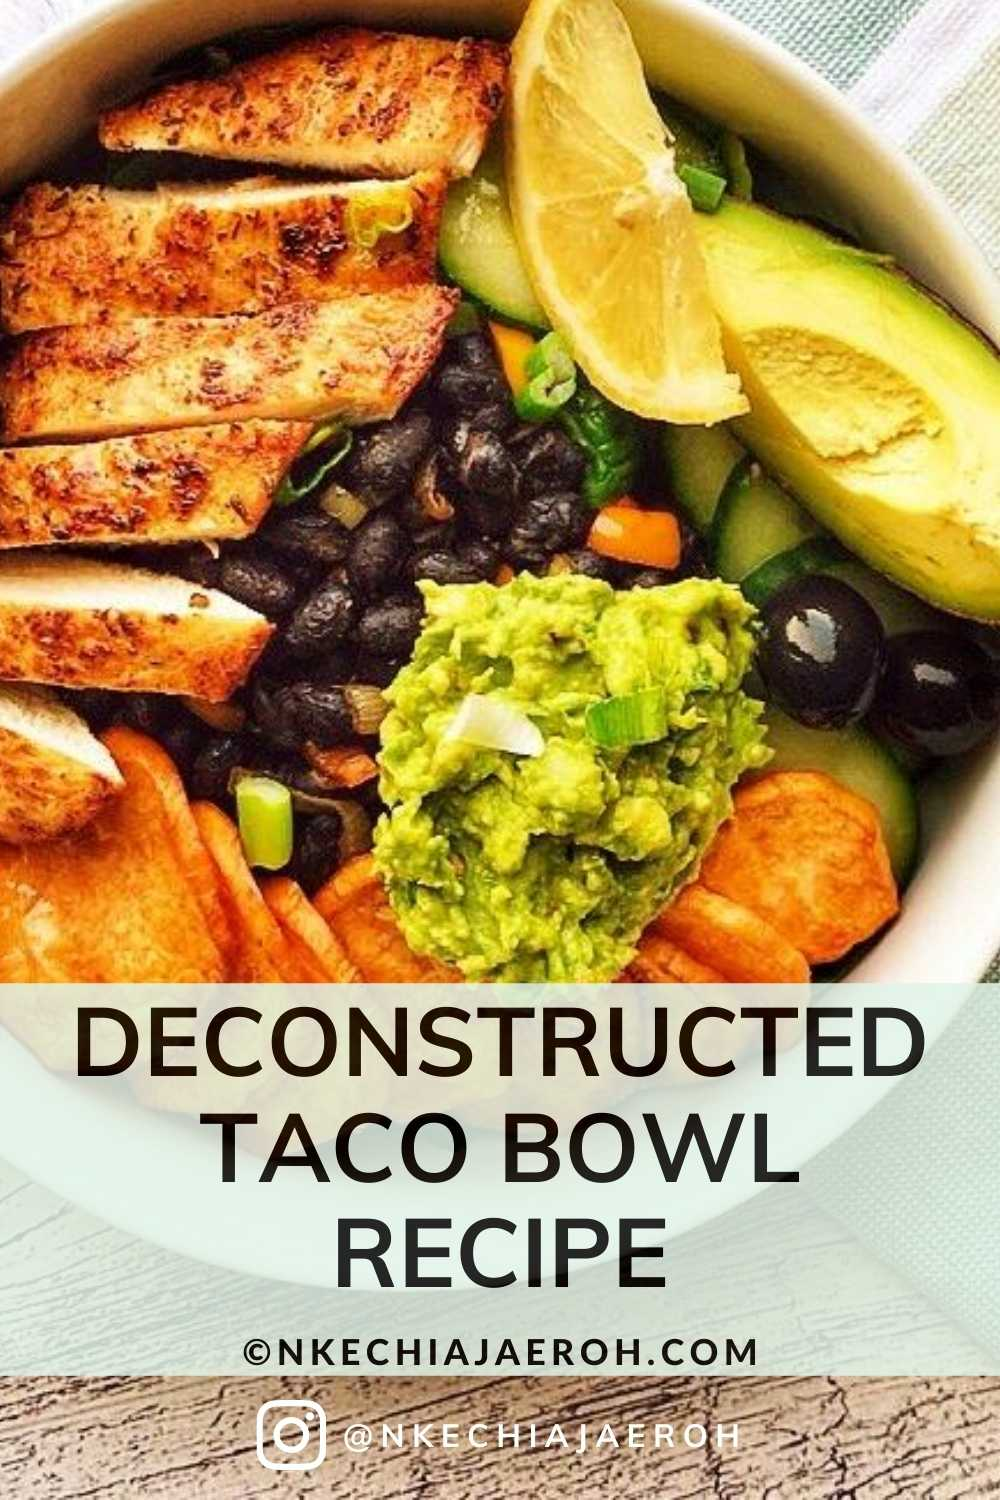 This low-carb healthy and nutritious deconstructed taco bowl recipe is the best salad!  It is easy to make and tastes incredibly delicious! This is the only taco Bowl you need; it is excellent for healthy meal prep, in other words, prep a bunch of things ahead such as black beans, chicken, cut cucumbers, etc., This healthy, taco salad recipe incorporates sweet potatoes, and it makes it even tastier and satisfying! #tacorecipe, #blackbeanstaco #burritobowl #chickentaco #tacobowl